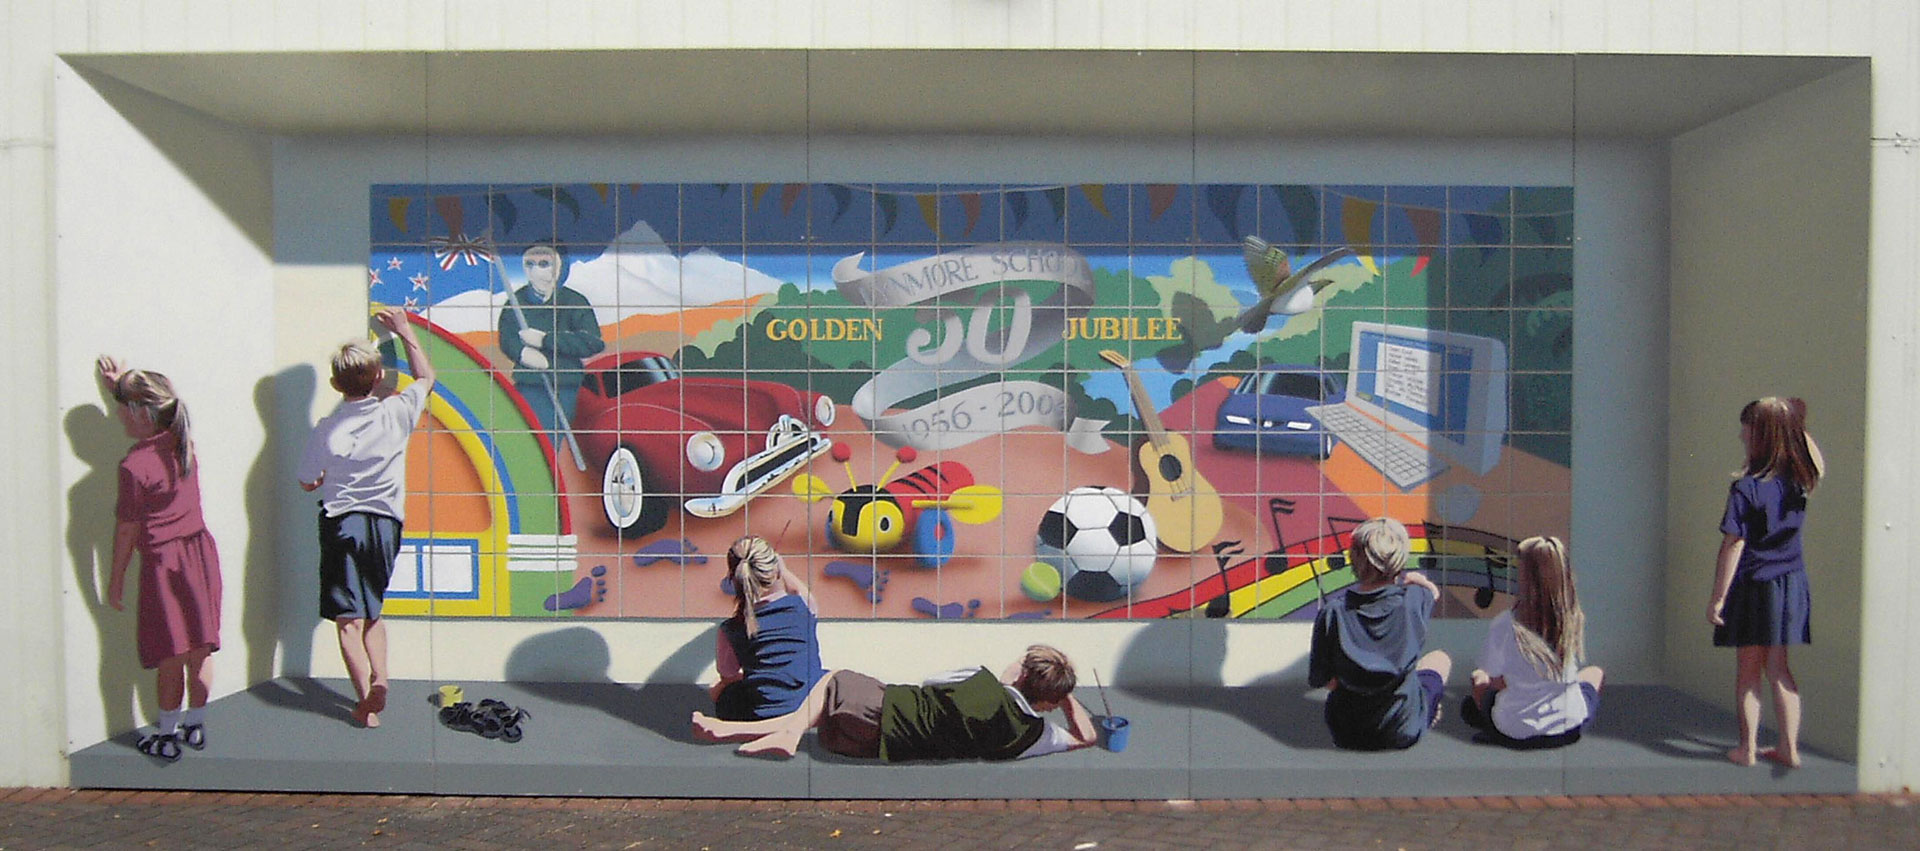 lynmore-jubilee-1920x851 Illusion murals